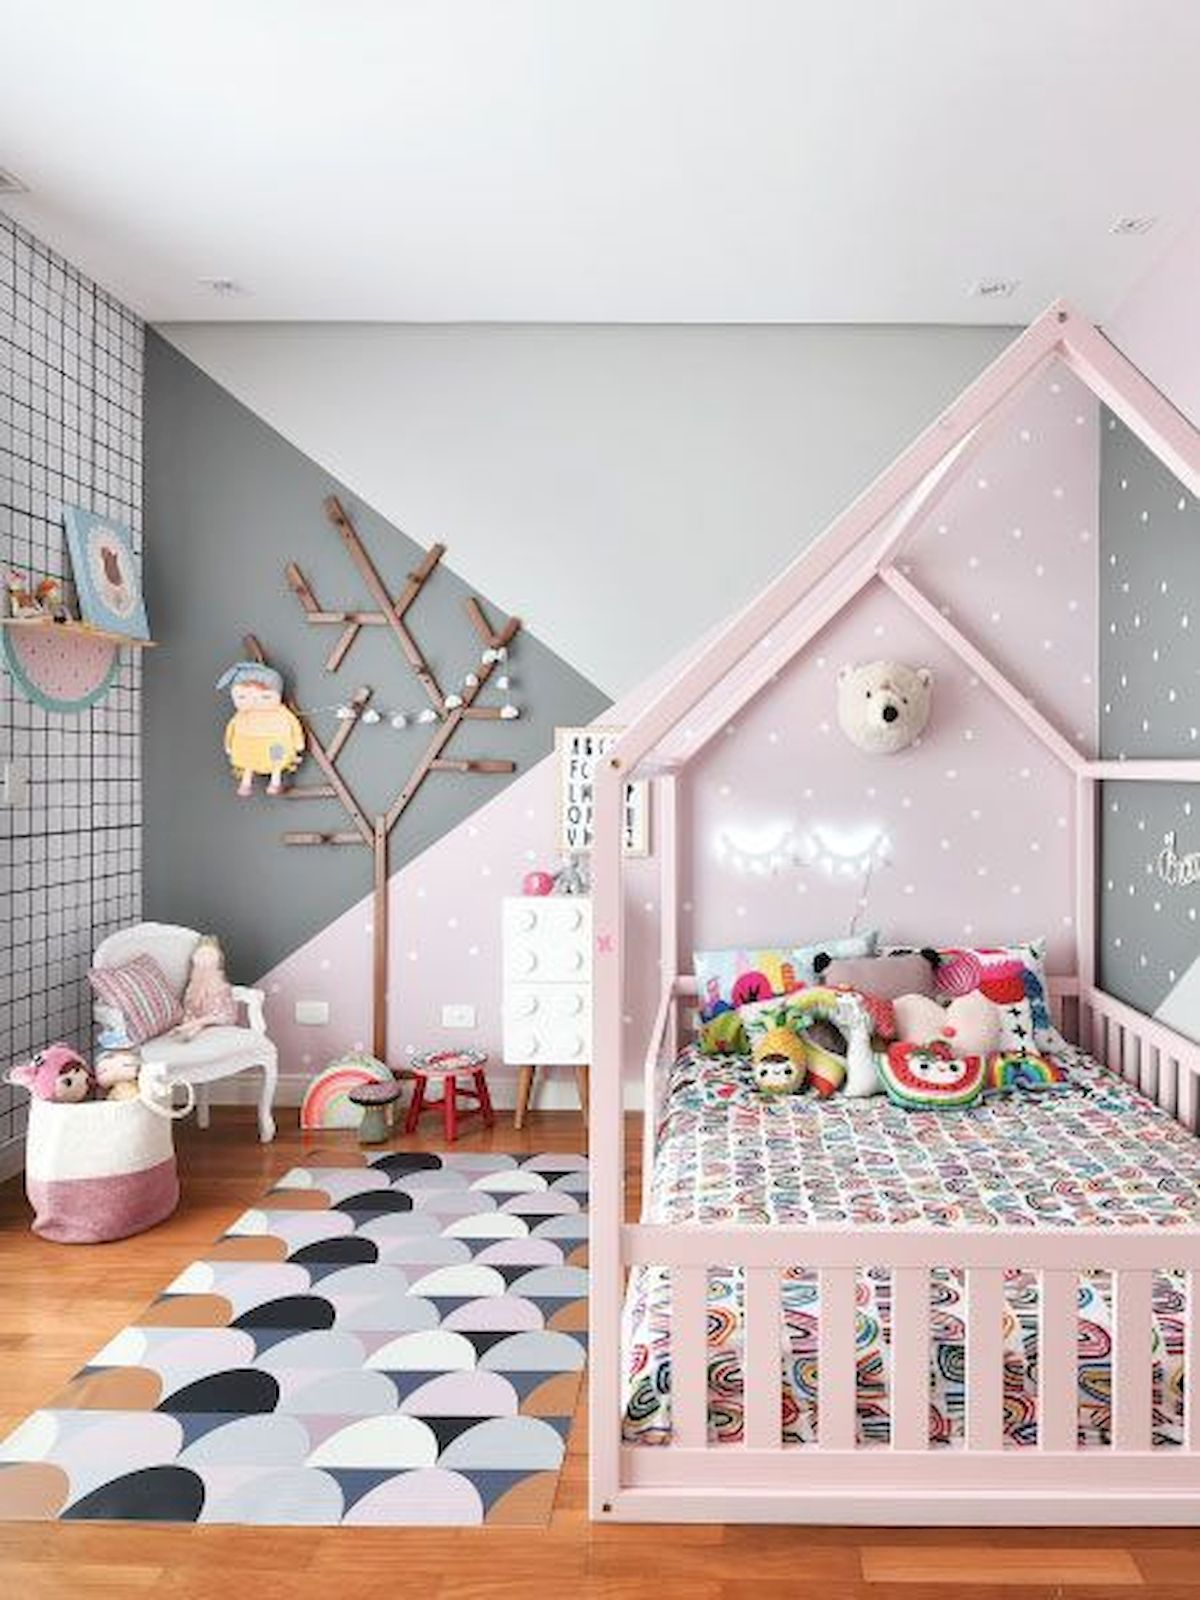 33 Adorable Nursery Room Ideas For Girl (8 images